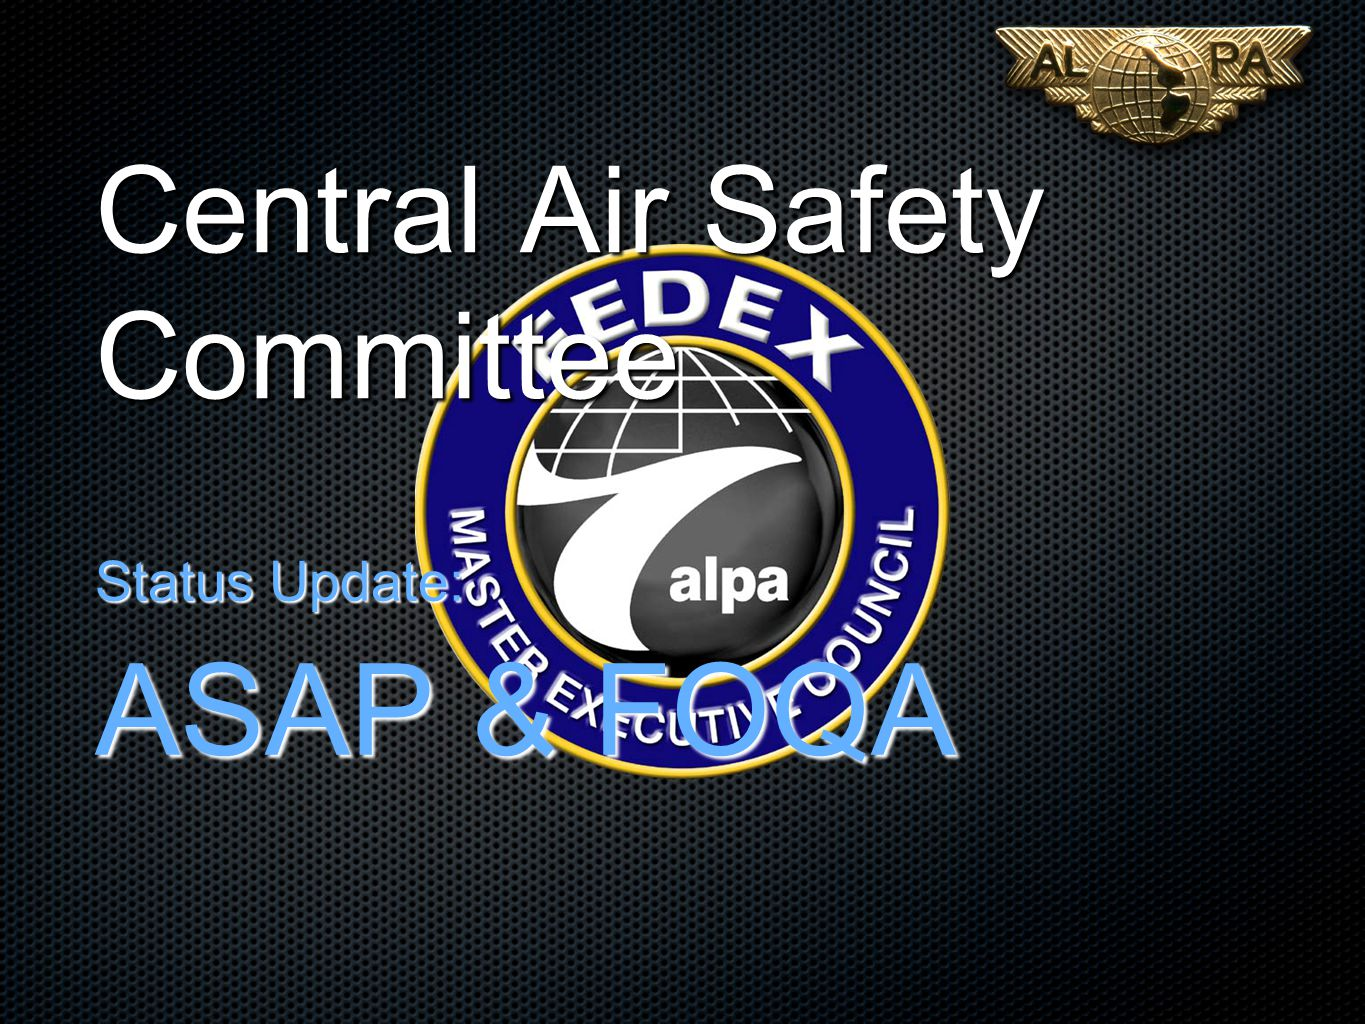 Central Air Safety Committee Status Update: ASAP & FOQA